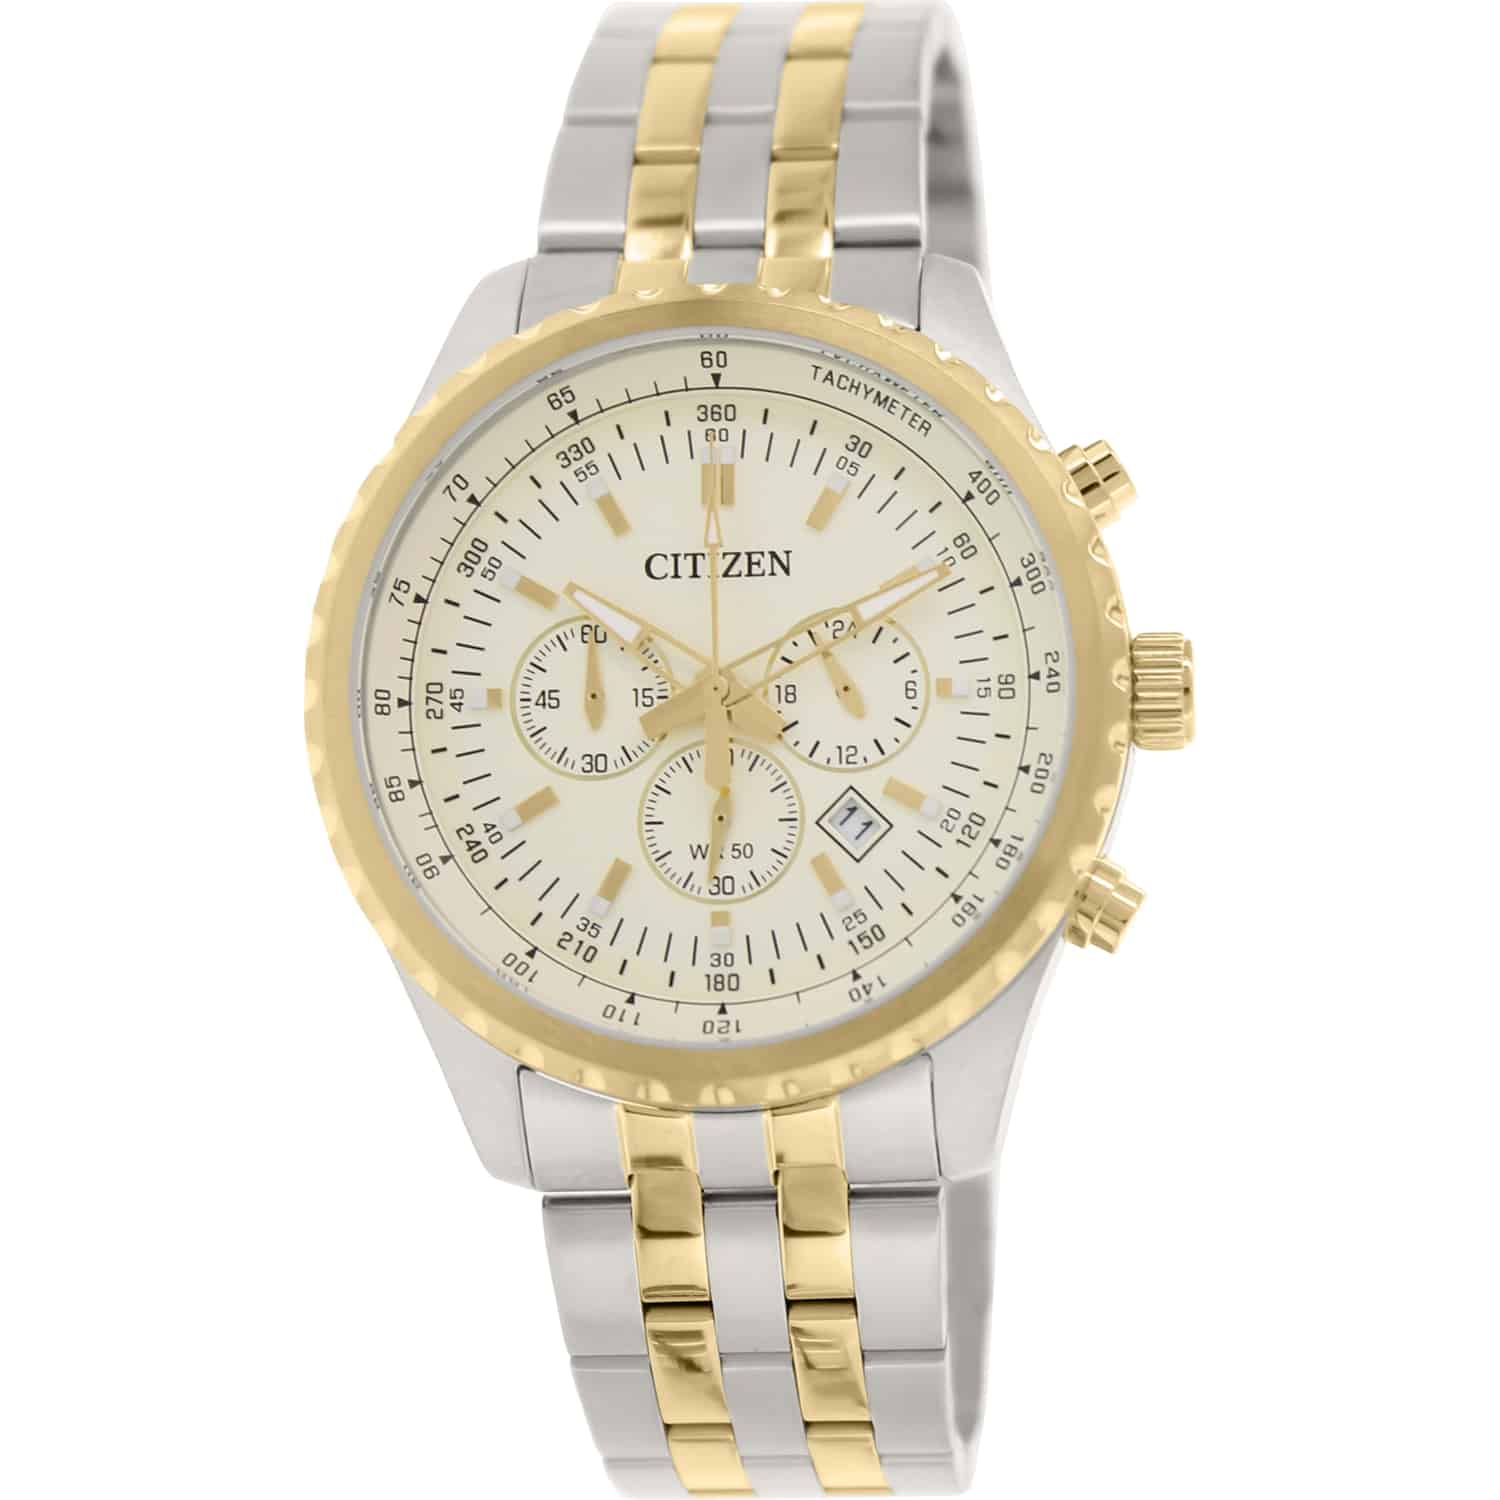 Citizen-1150